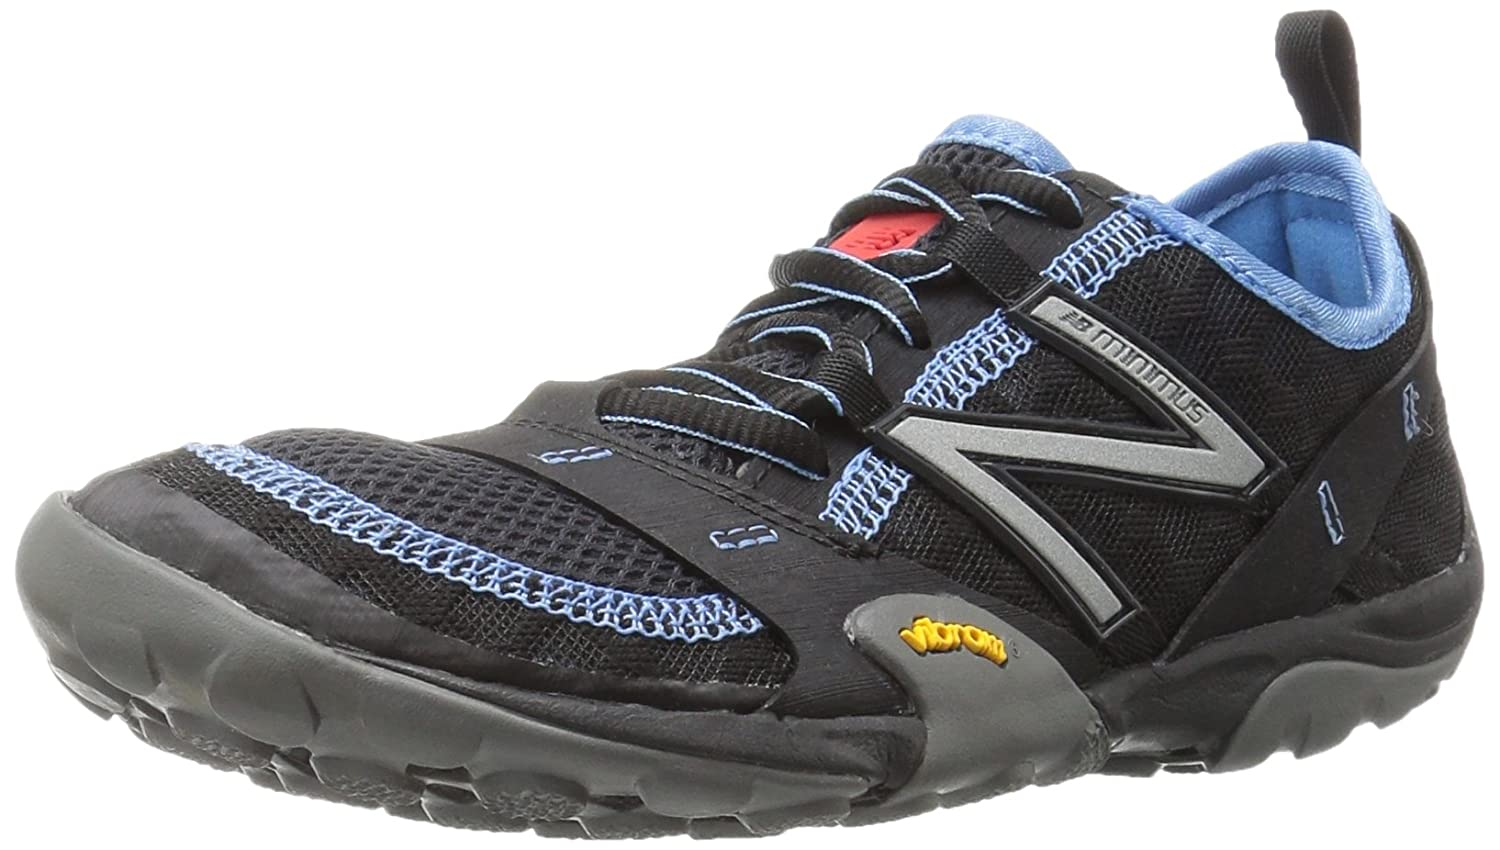 New Balance Women's WT10v1 Minimus Trail Running Shoe B01FSITNTM 11 D US|Black/Blue